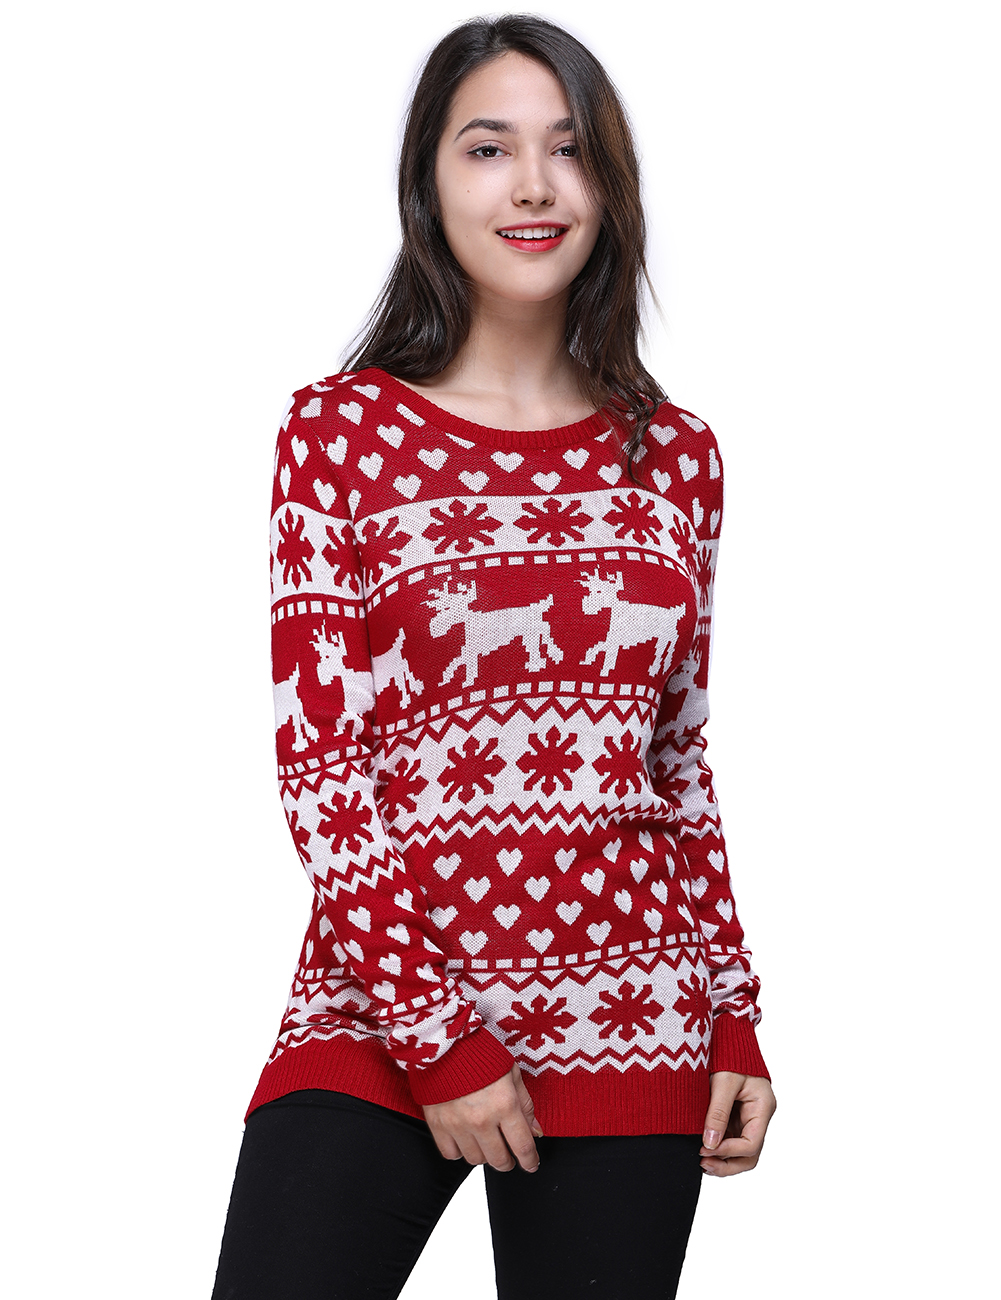 Women Knitted Christmas Red Sweater With Deer Knitted Pullover Sweater Soft Pull Femme Autumn Warm Knitting Sweater